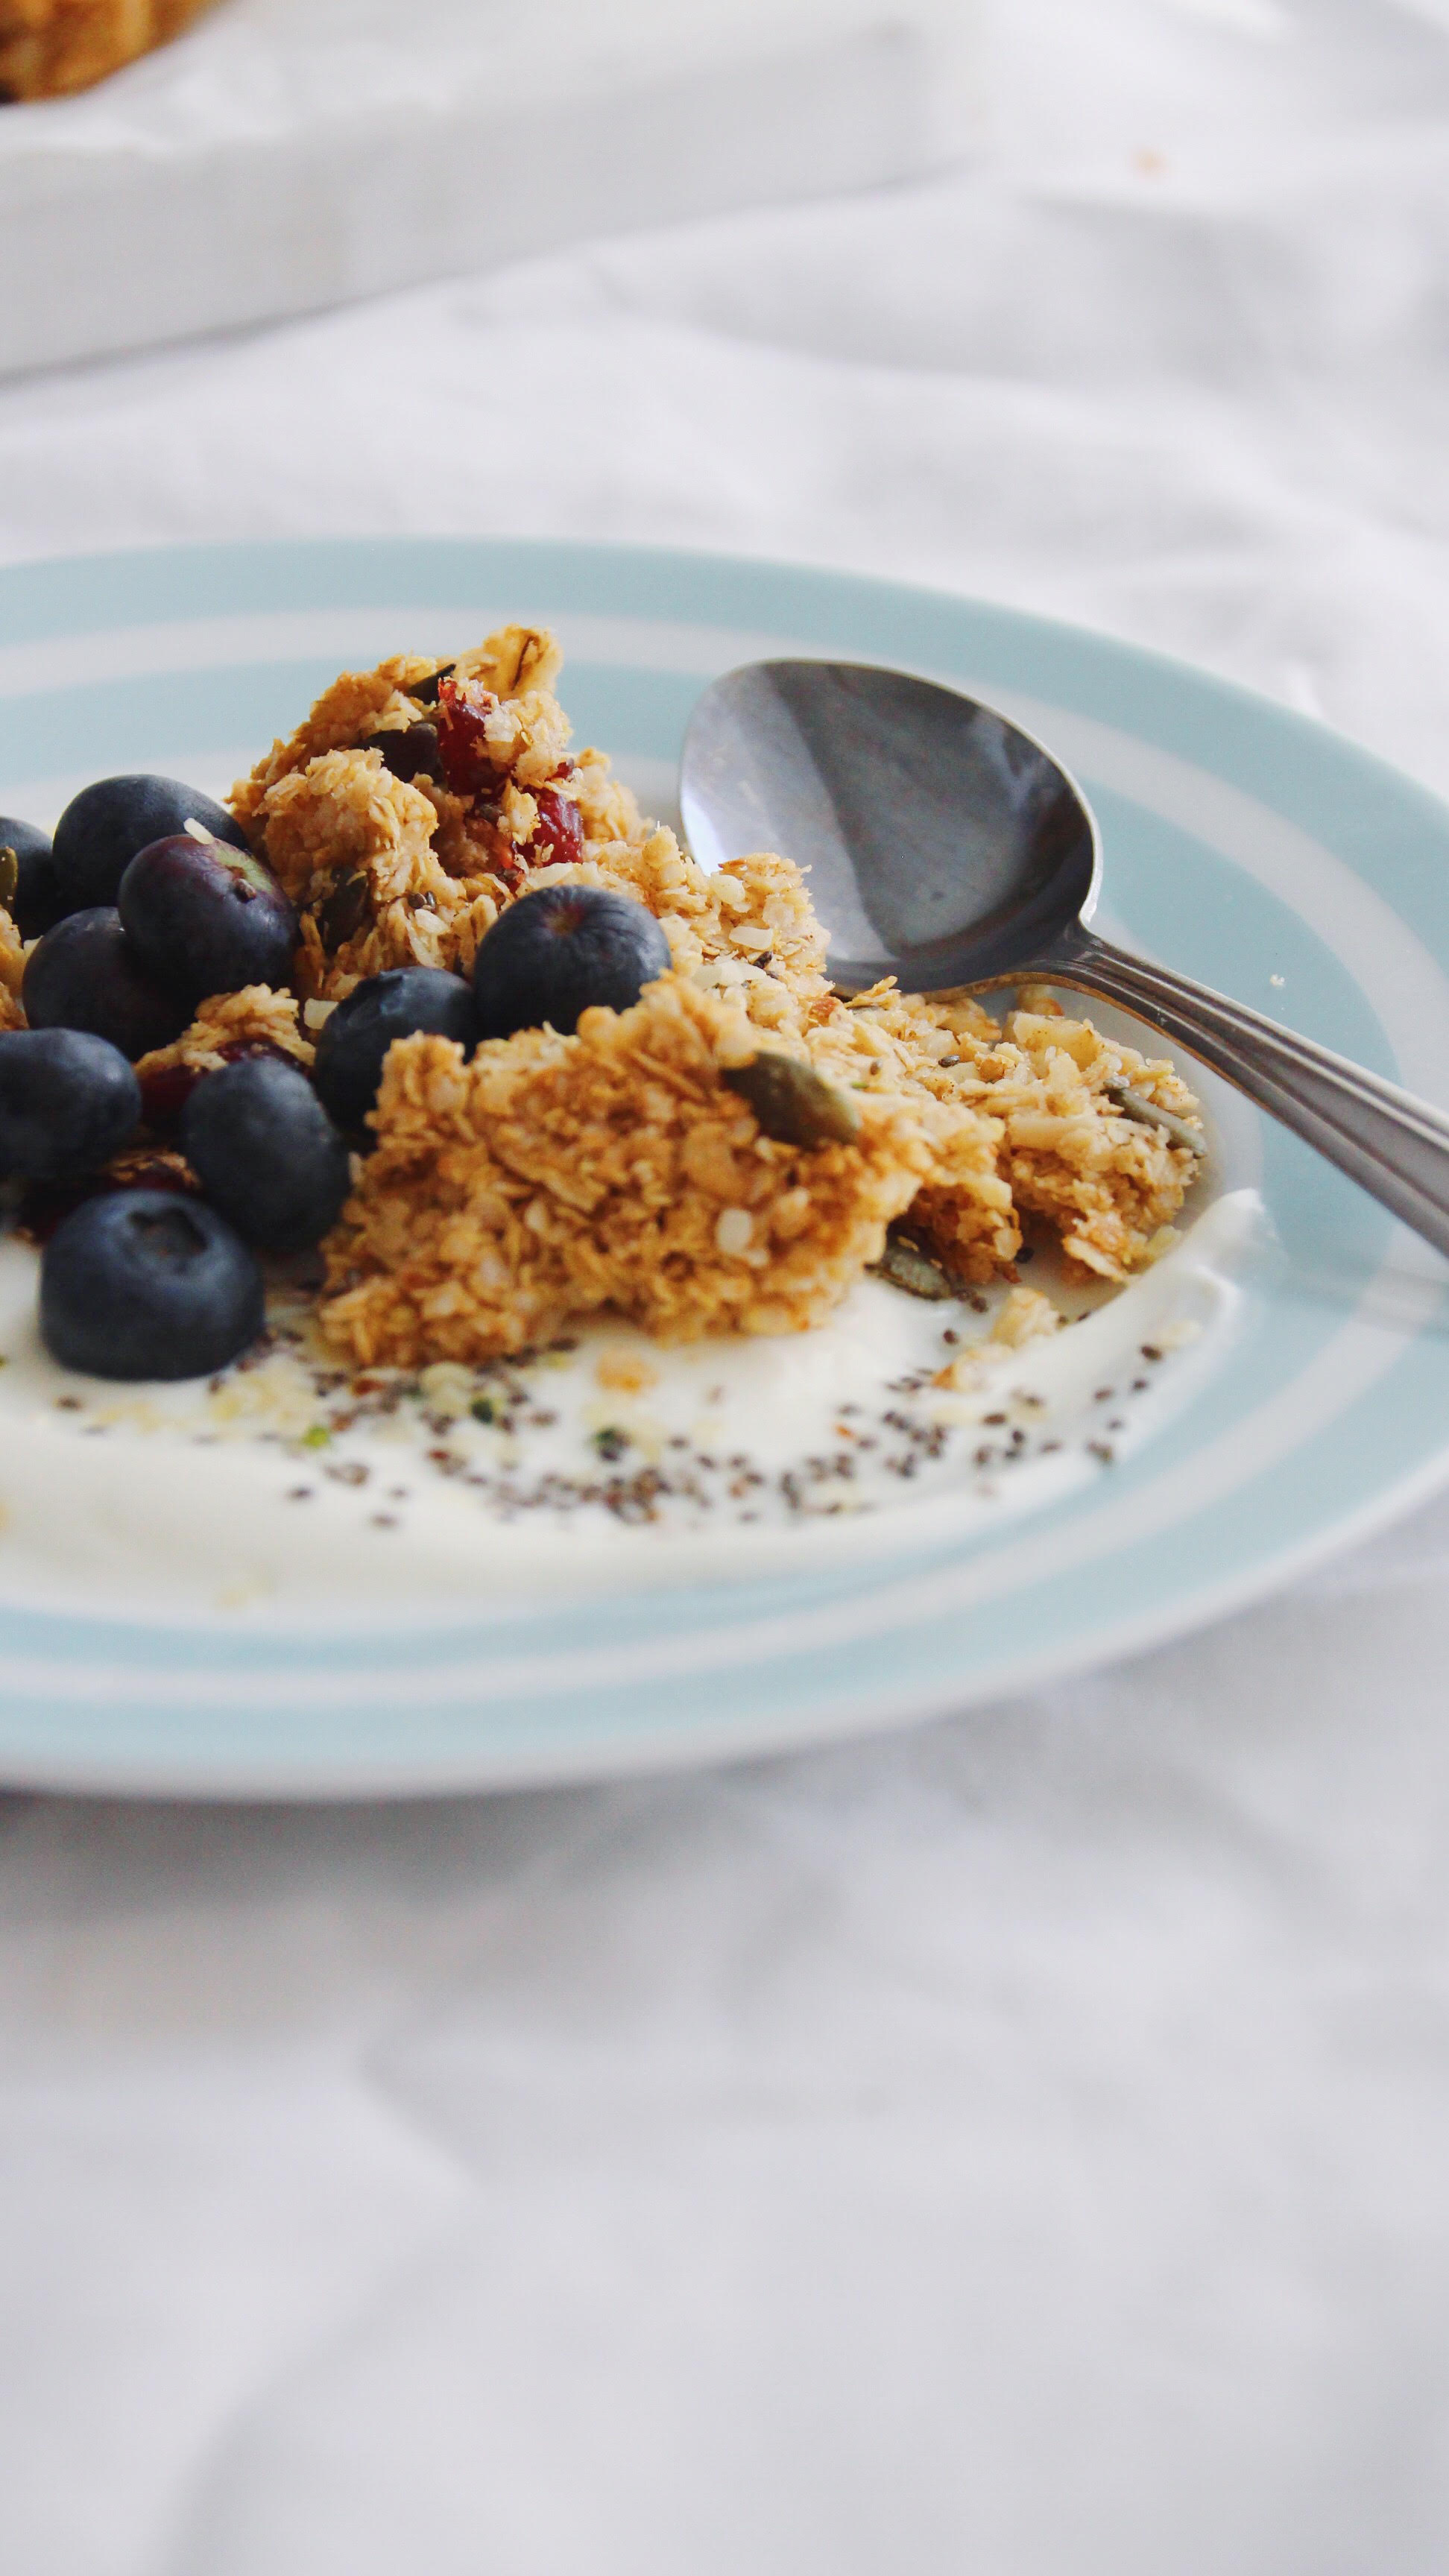 Low FODMAP breakfast recipe